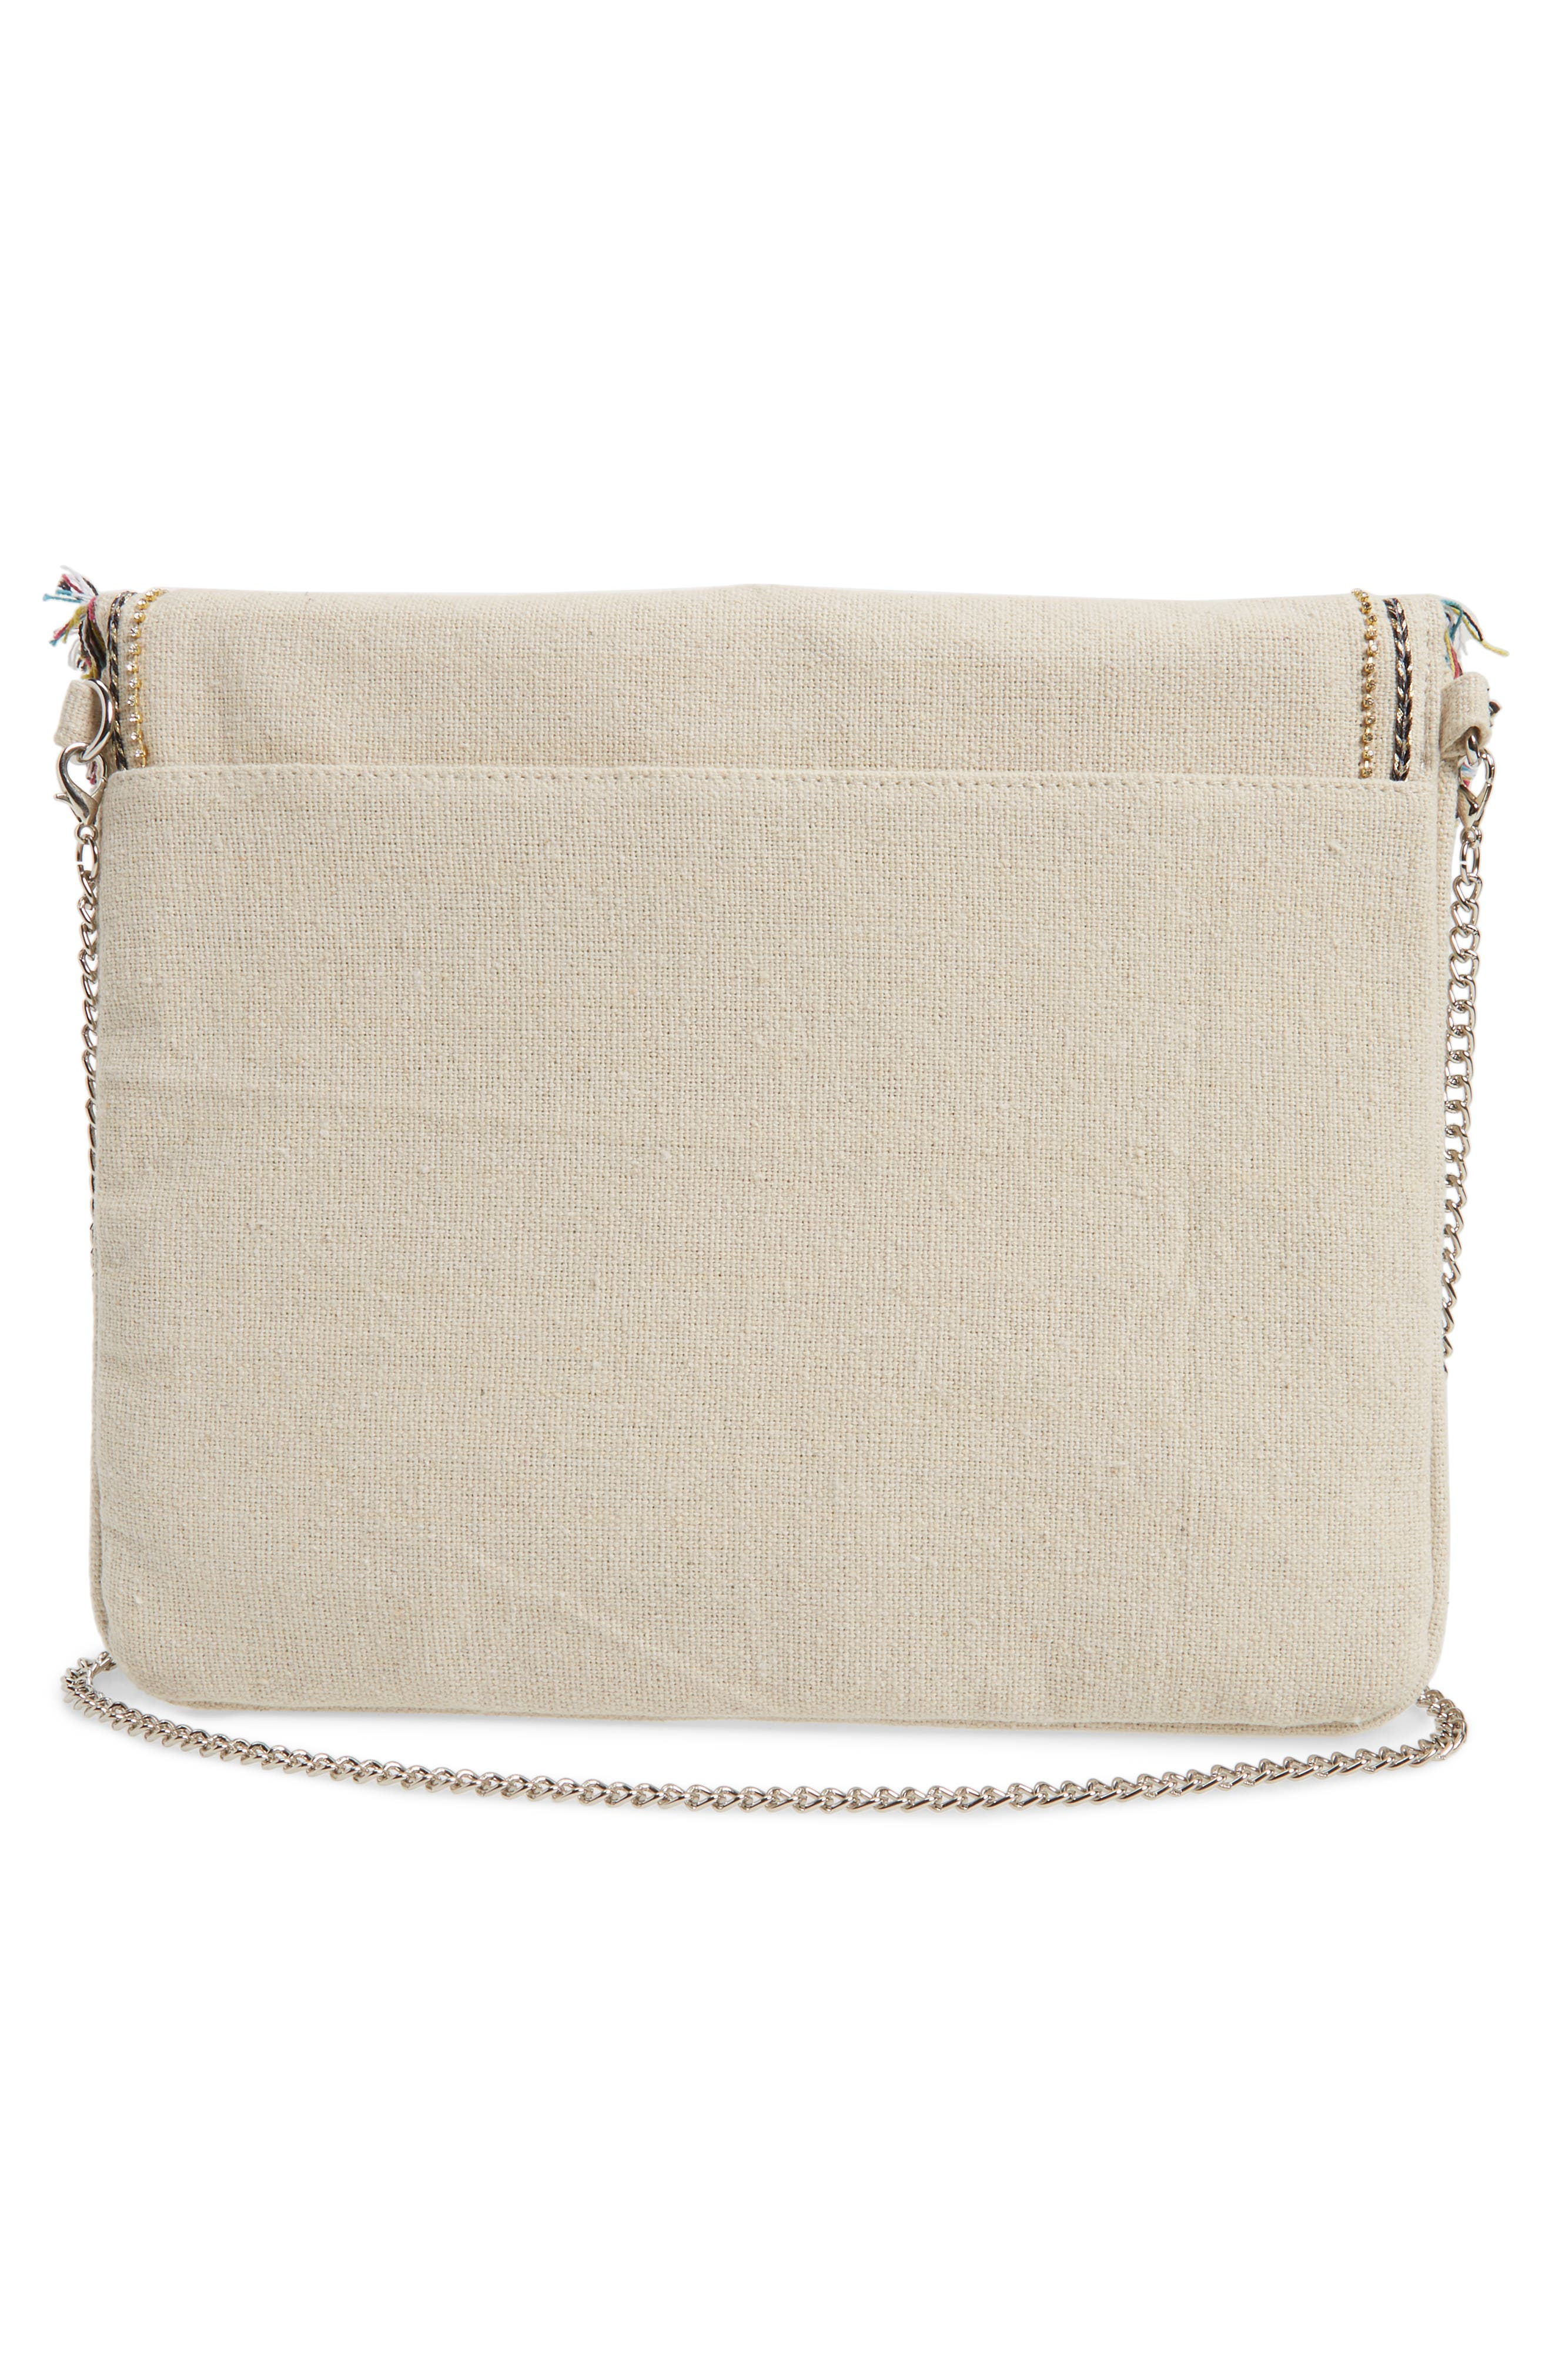 Bird Appliqué Oversize Envelope Clutch,                             Alternate thumbnail 3, color,                             250